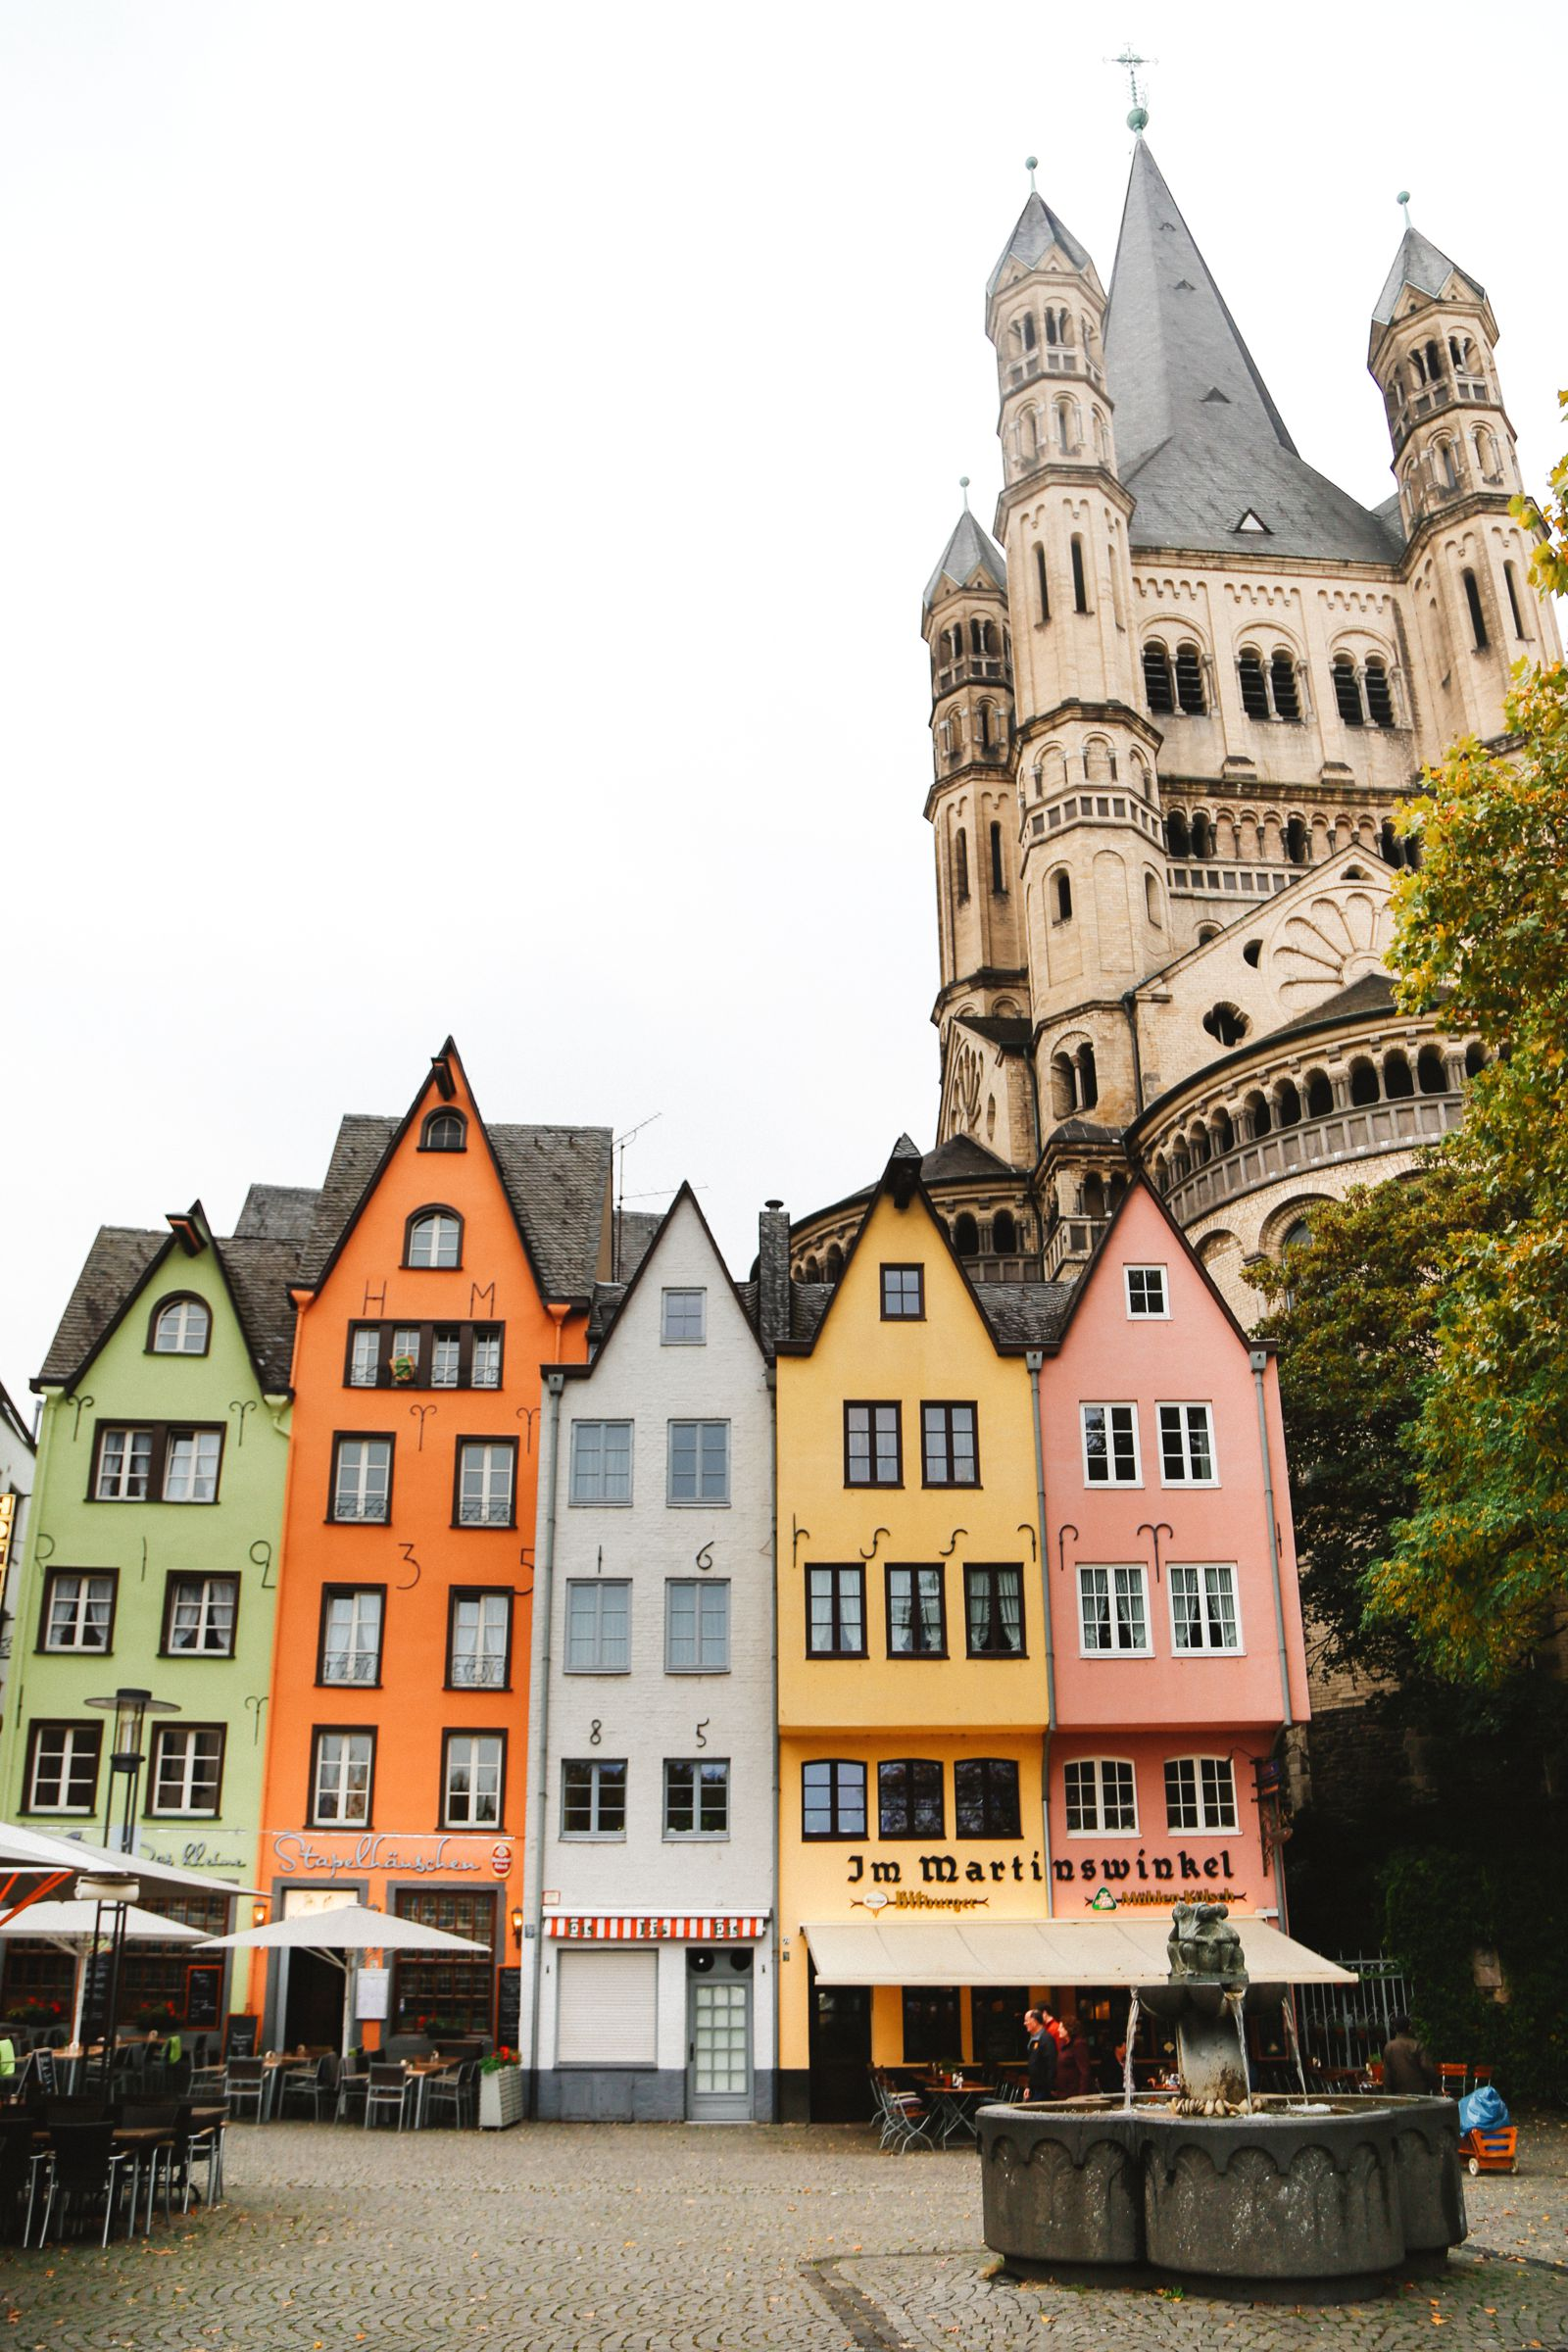 Cologne City Guide What To Visit While You're In Town For IMM 2019 9 imm 2019 Cologne City Guide: What To Visit While You're In Town For IMM 2019 Cologne City Guide What To Visit While Youre In Town For IMM 2019 9